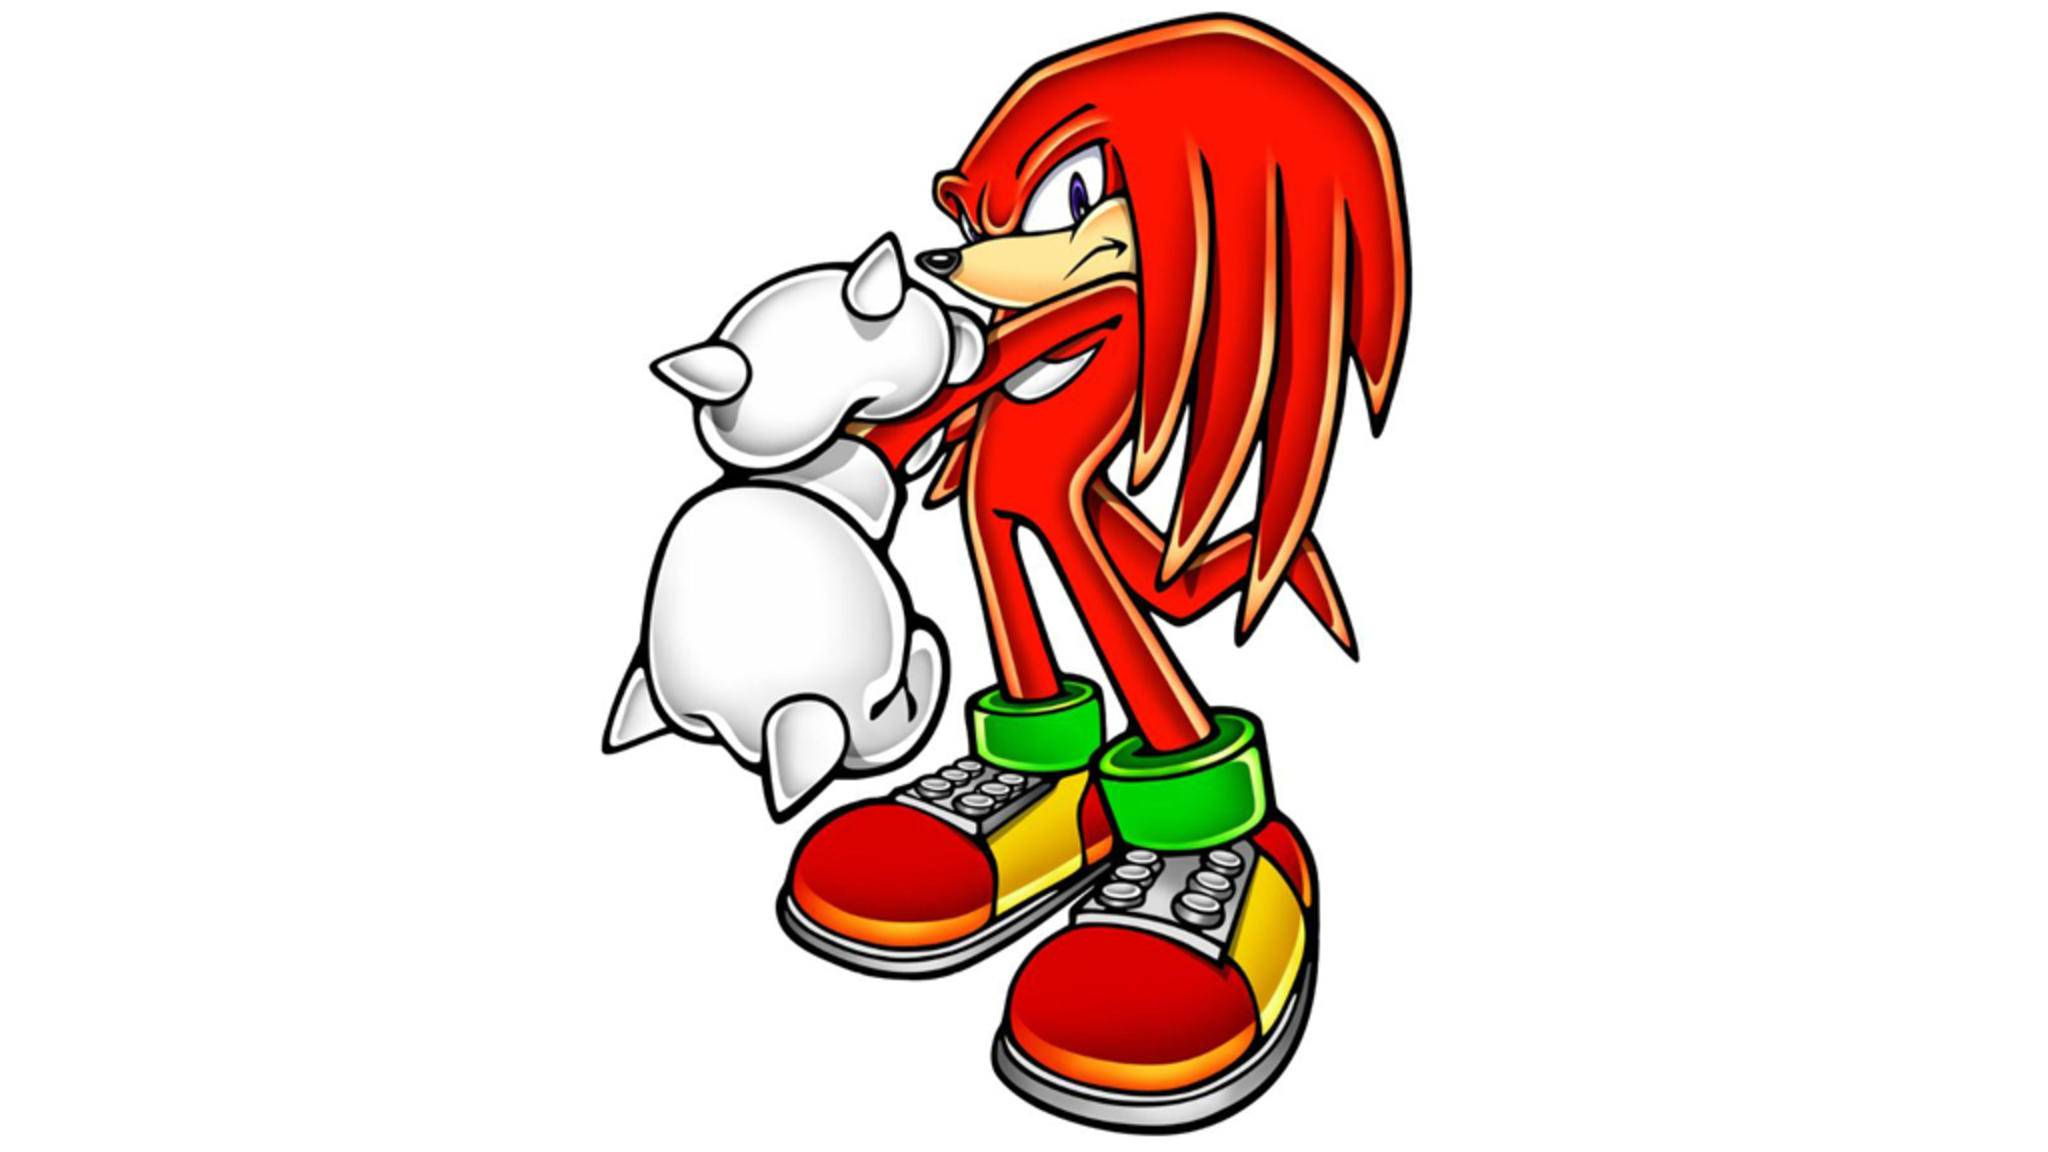 Knuckles Sonic the Hedgehog